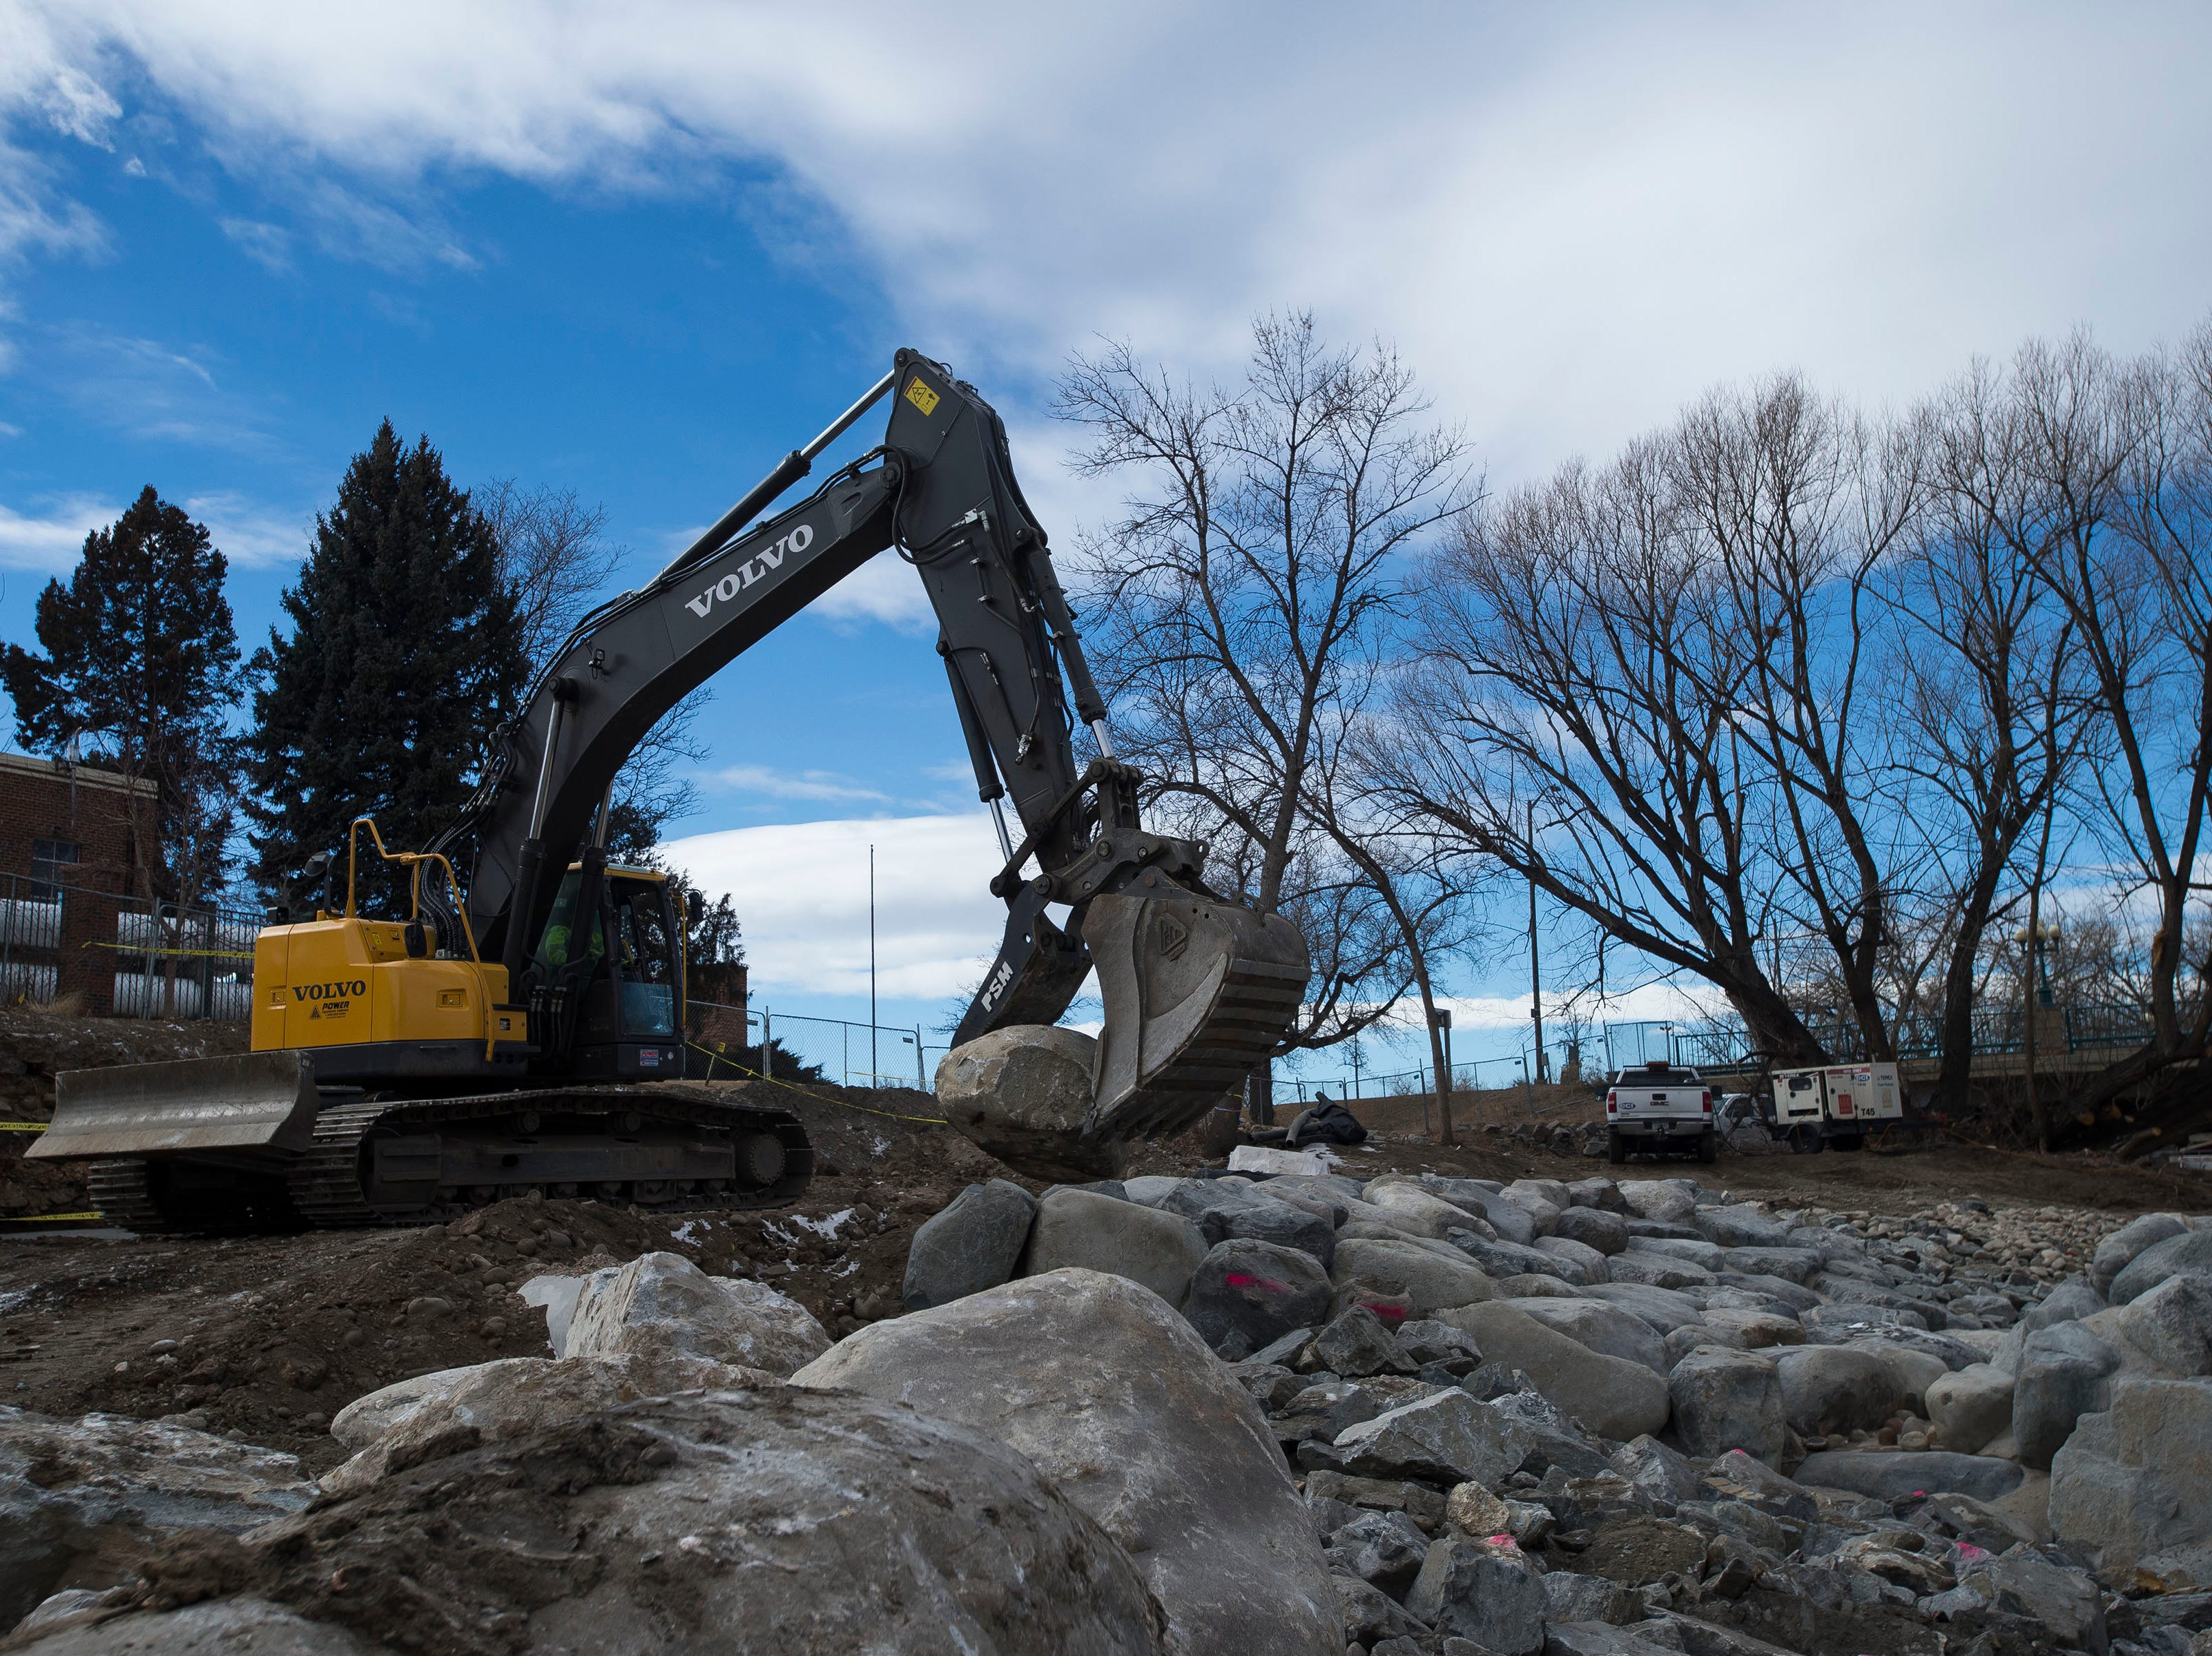 A backhoe drops large rocks into place on the riverbed on Wednesday, Jan. 23, 2019, on the Cache la Poudre River, just South of North College Avenue in Fort Collins, Colo.